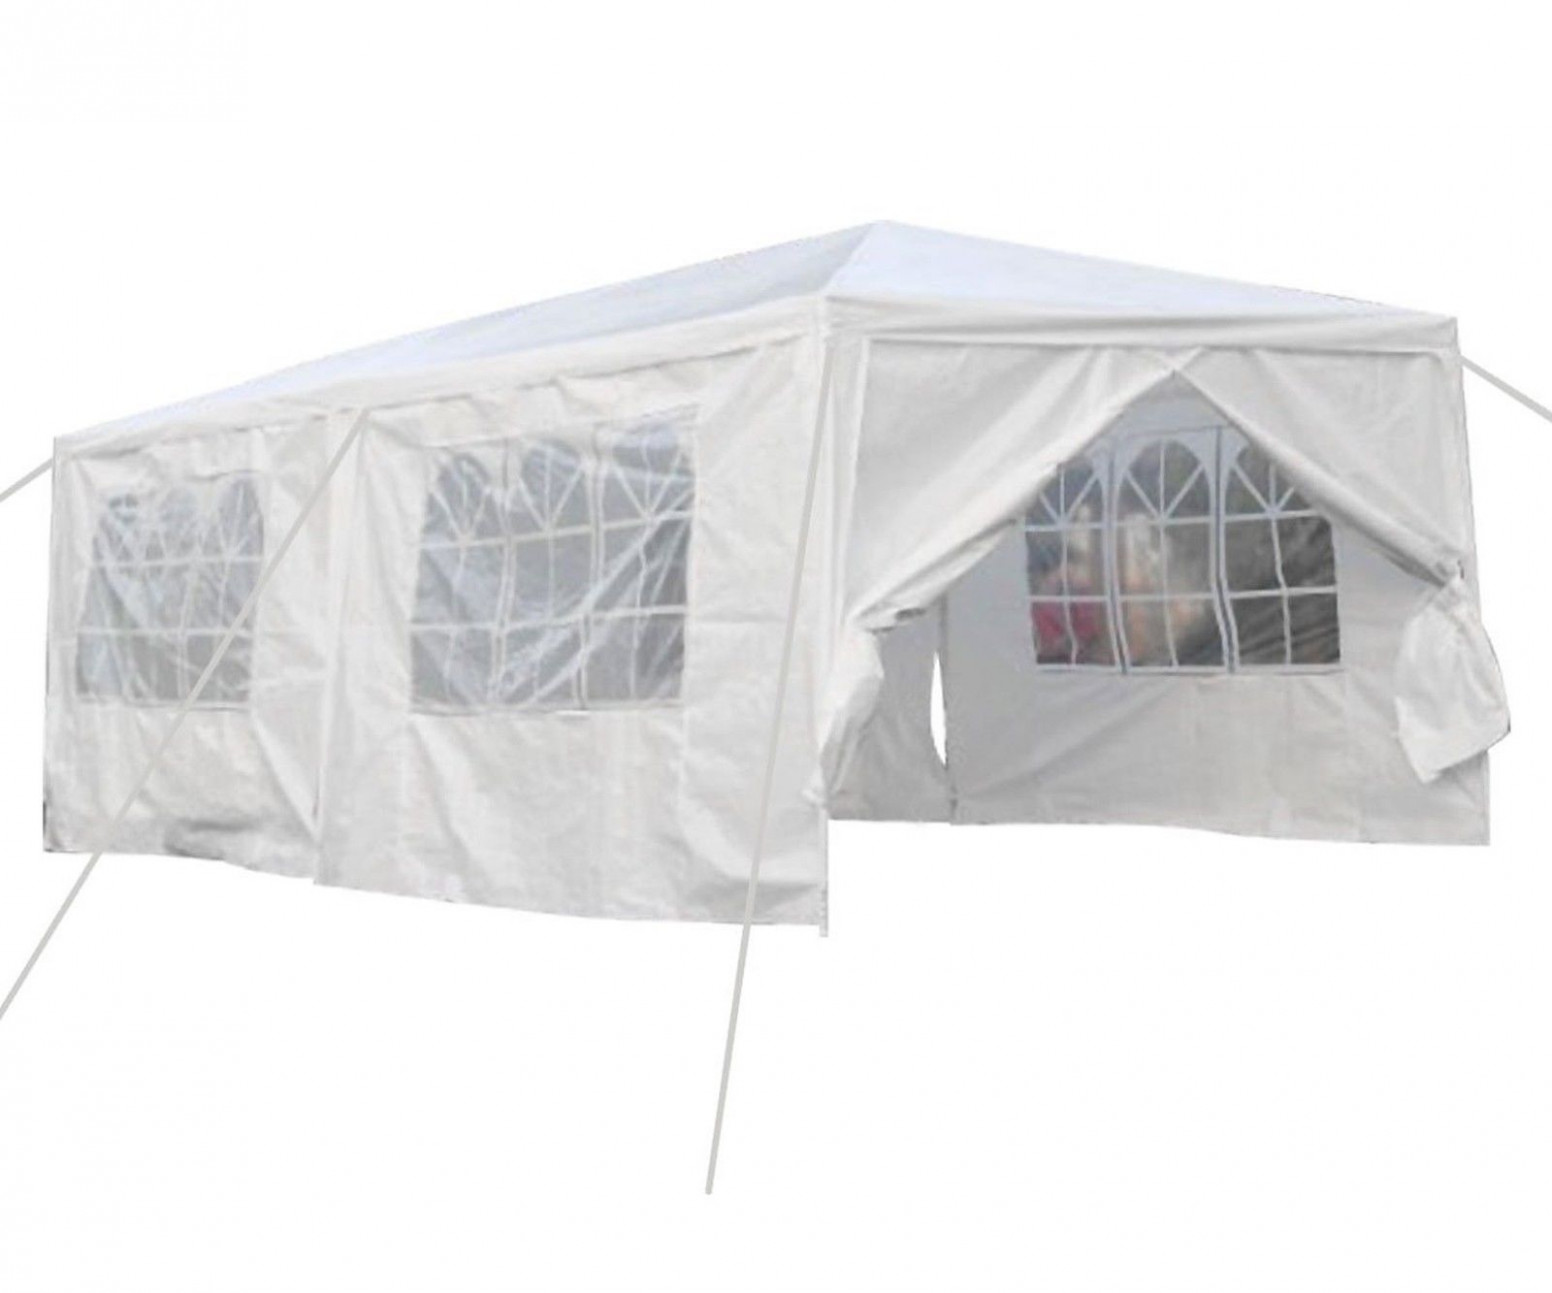 Qisan Canopy Tent Carport 12 X 12 Feet Domain Carport With Sidewalls White(ca..